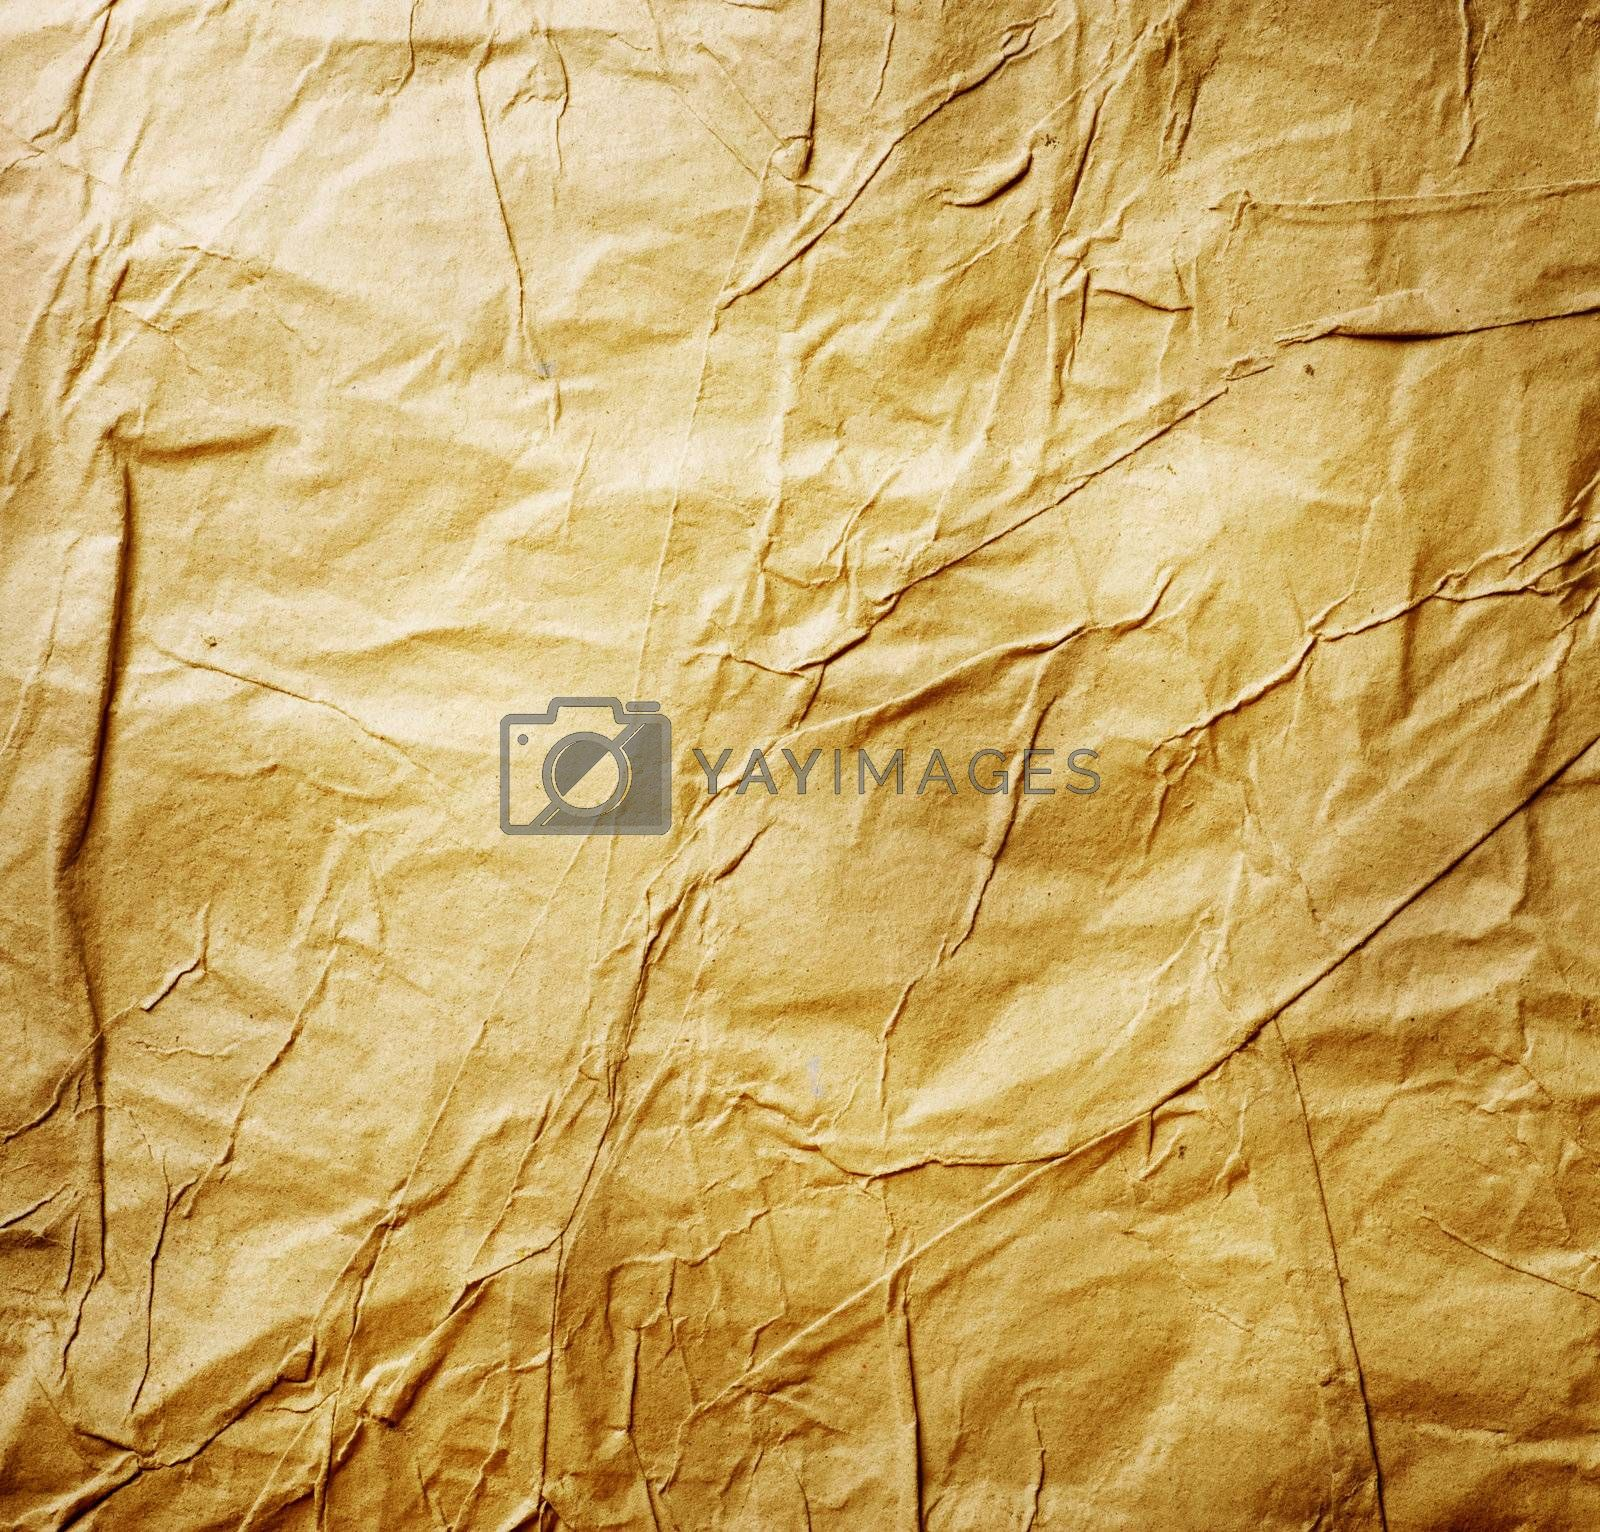 Old Crumpled Paper by Subbotina Anna